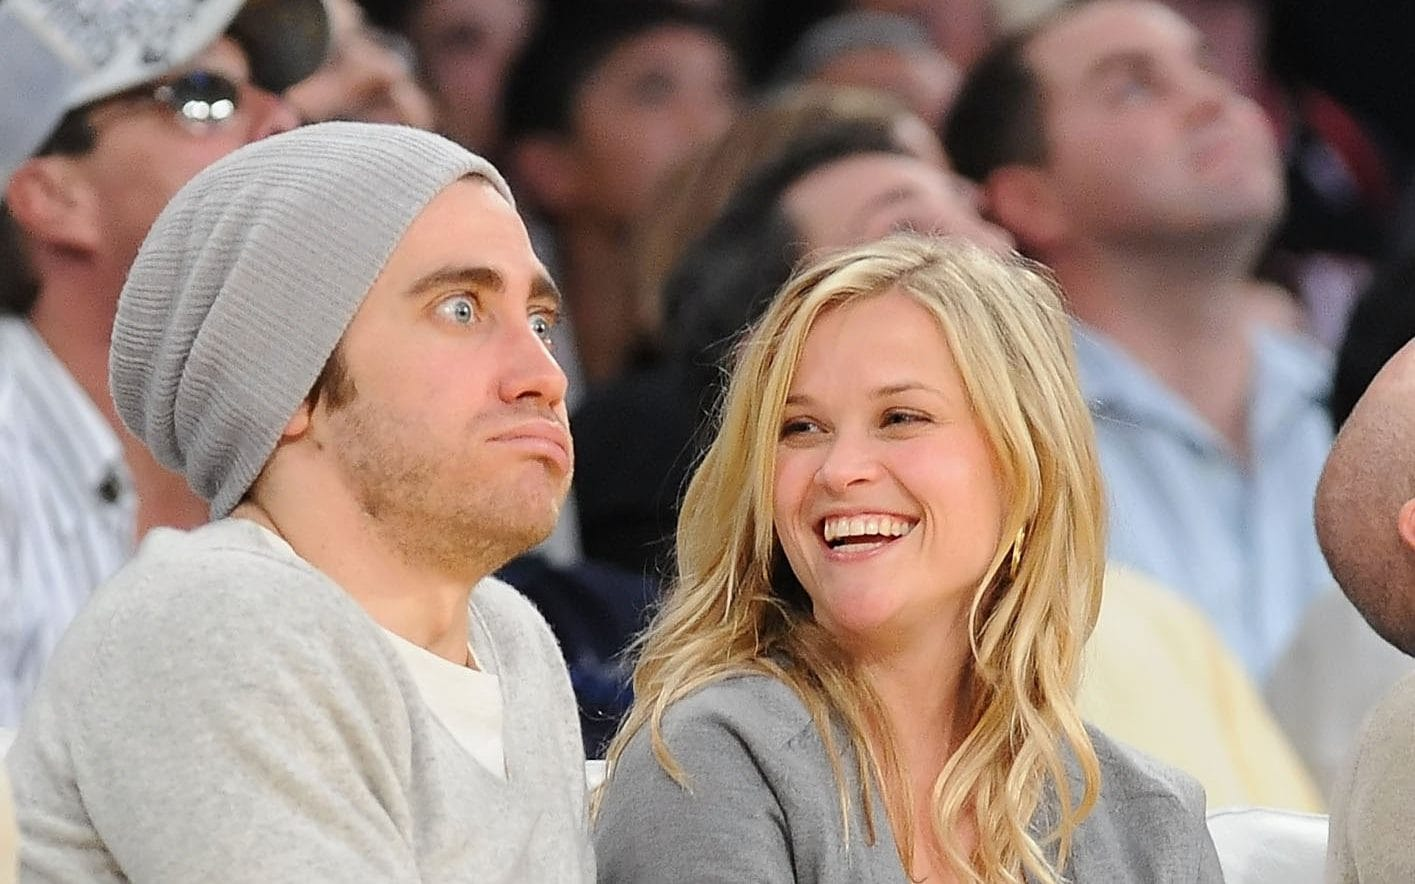 Jake Gyllenhaal with former girlfriend Reese Witherspoon at a Los Angeles Lakers basketball match in 2009